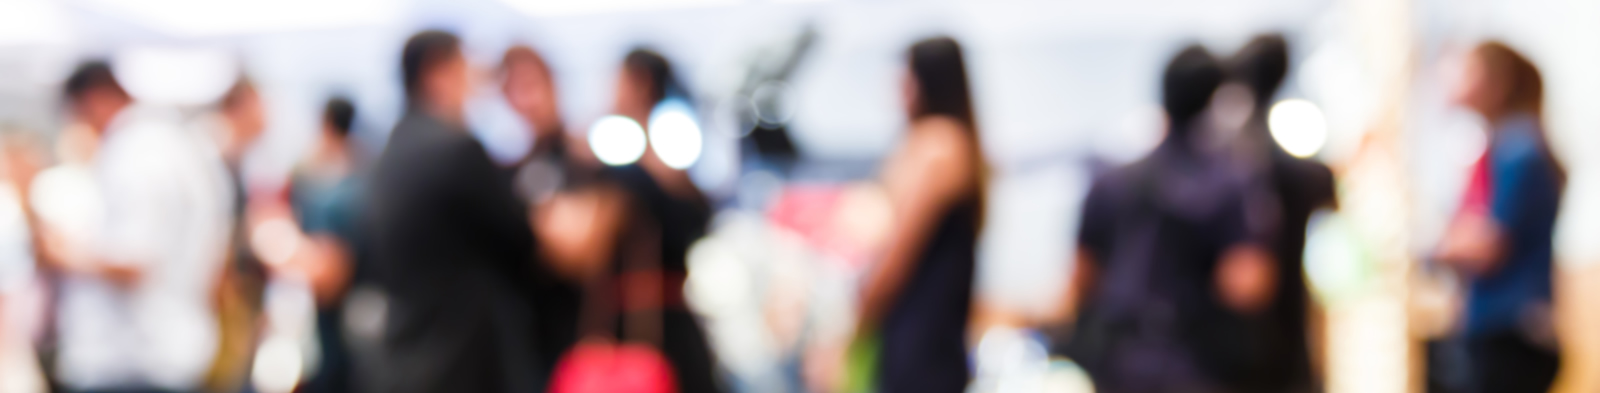 Blurred image of people mingling